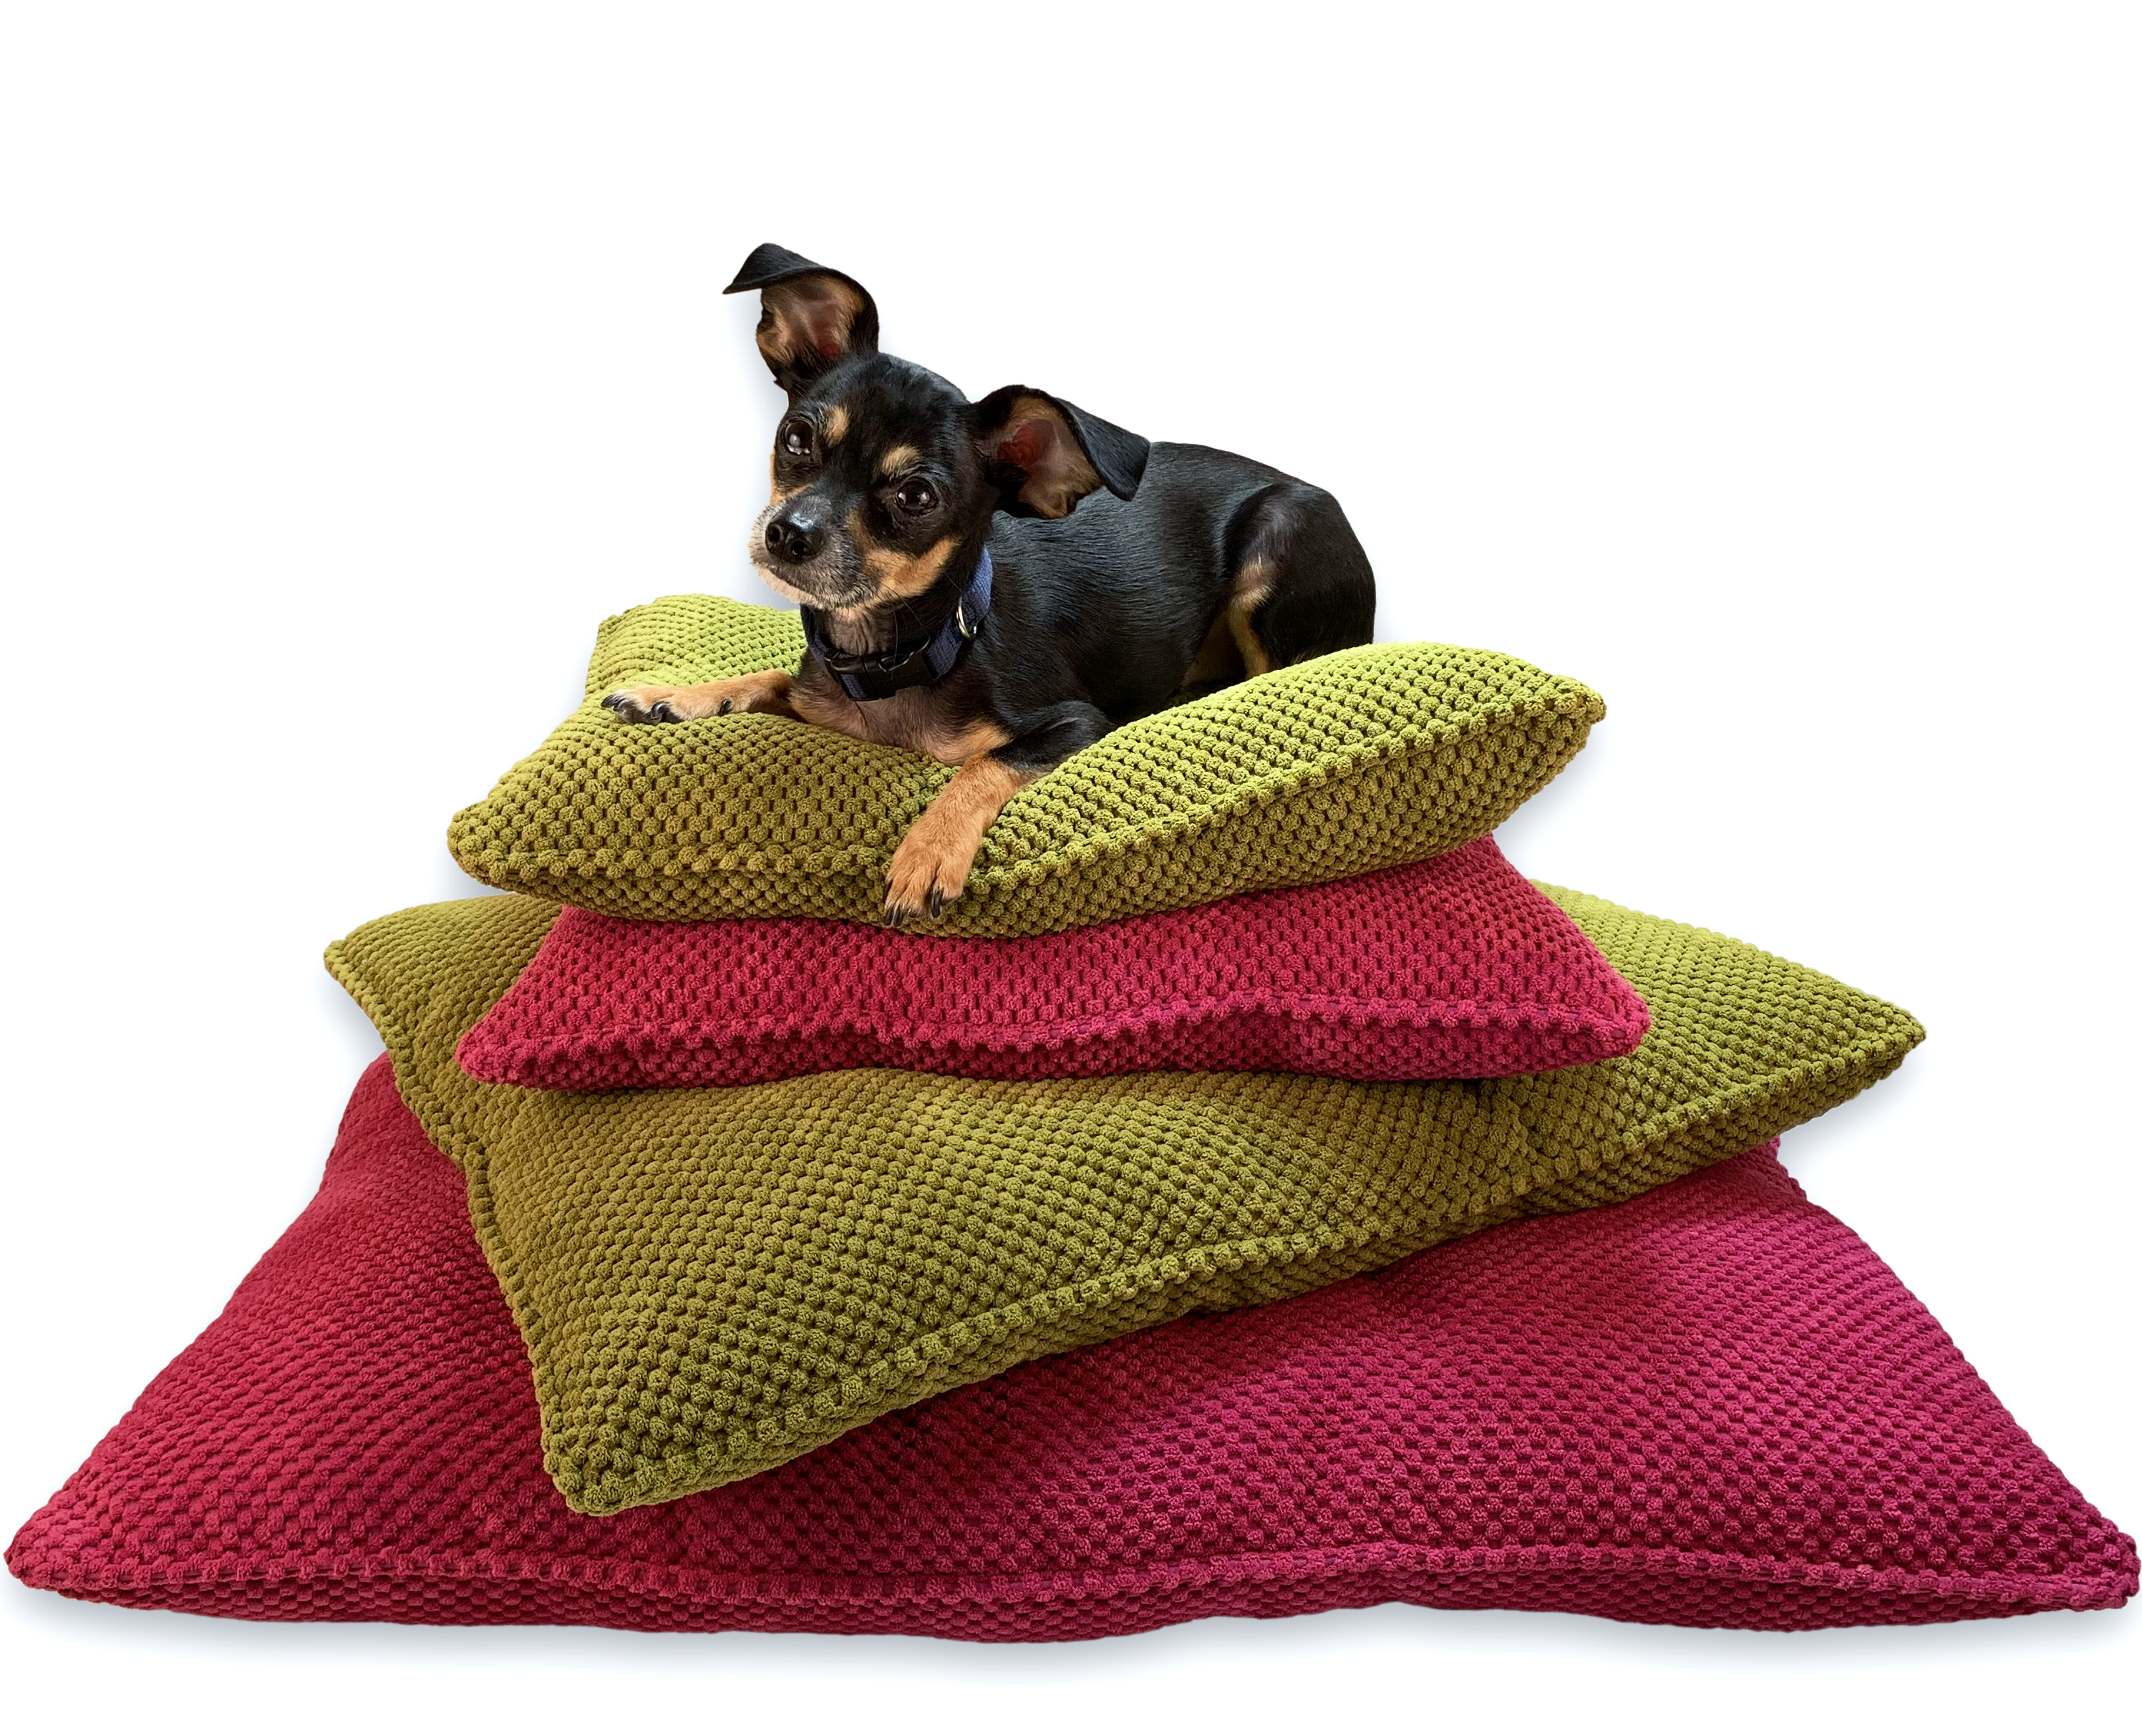 small dog on a pile of green and pink beds